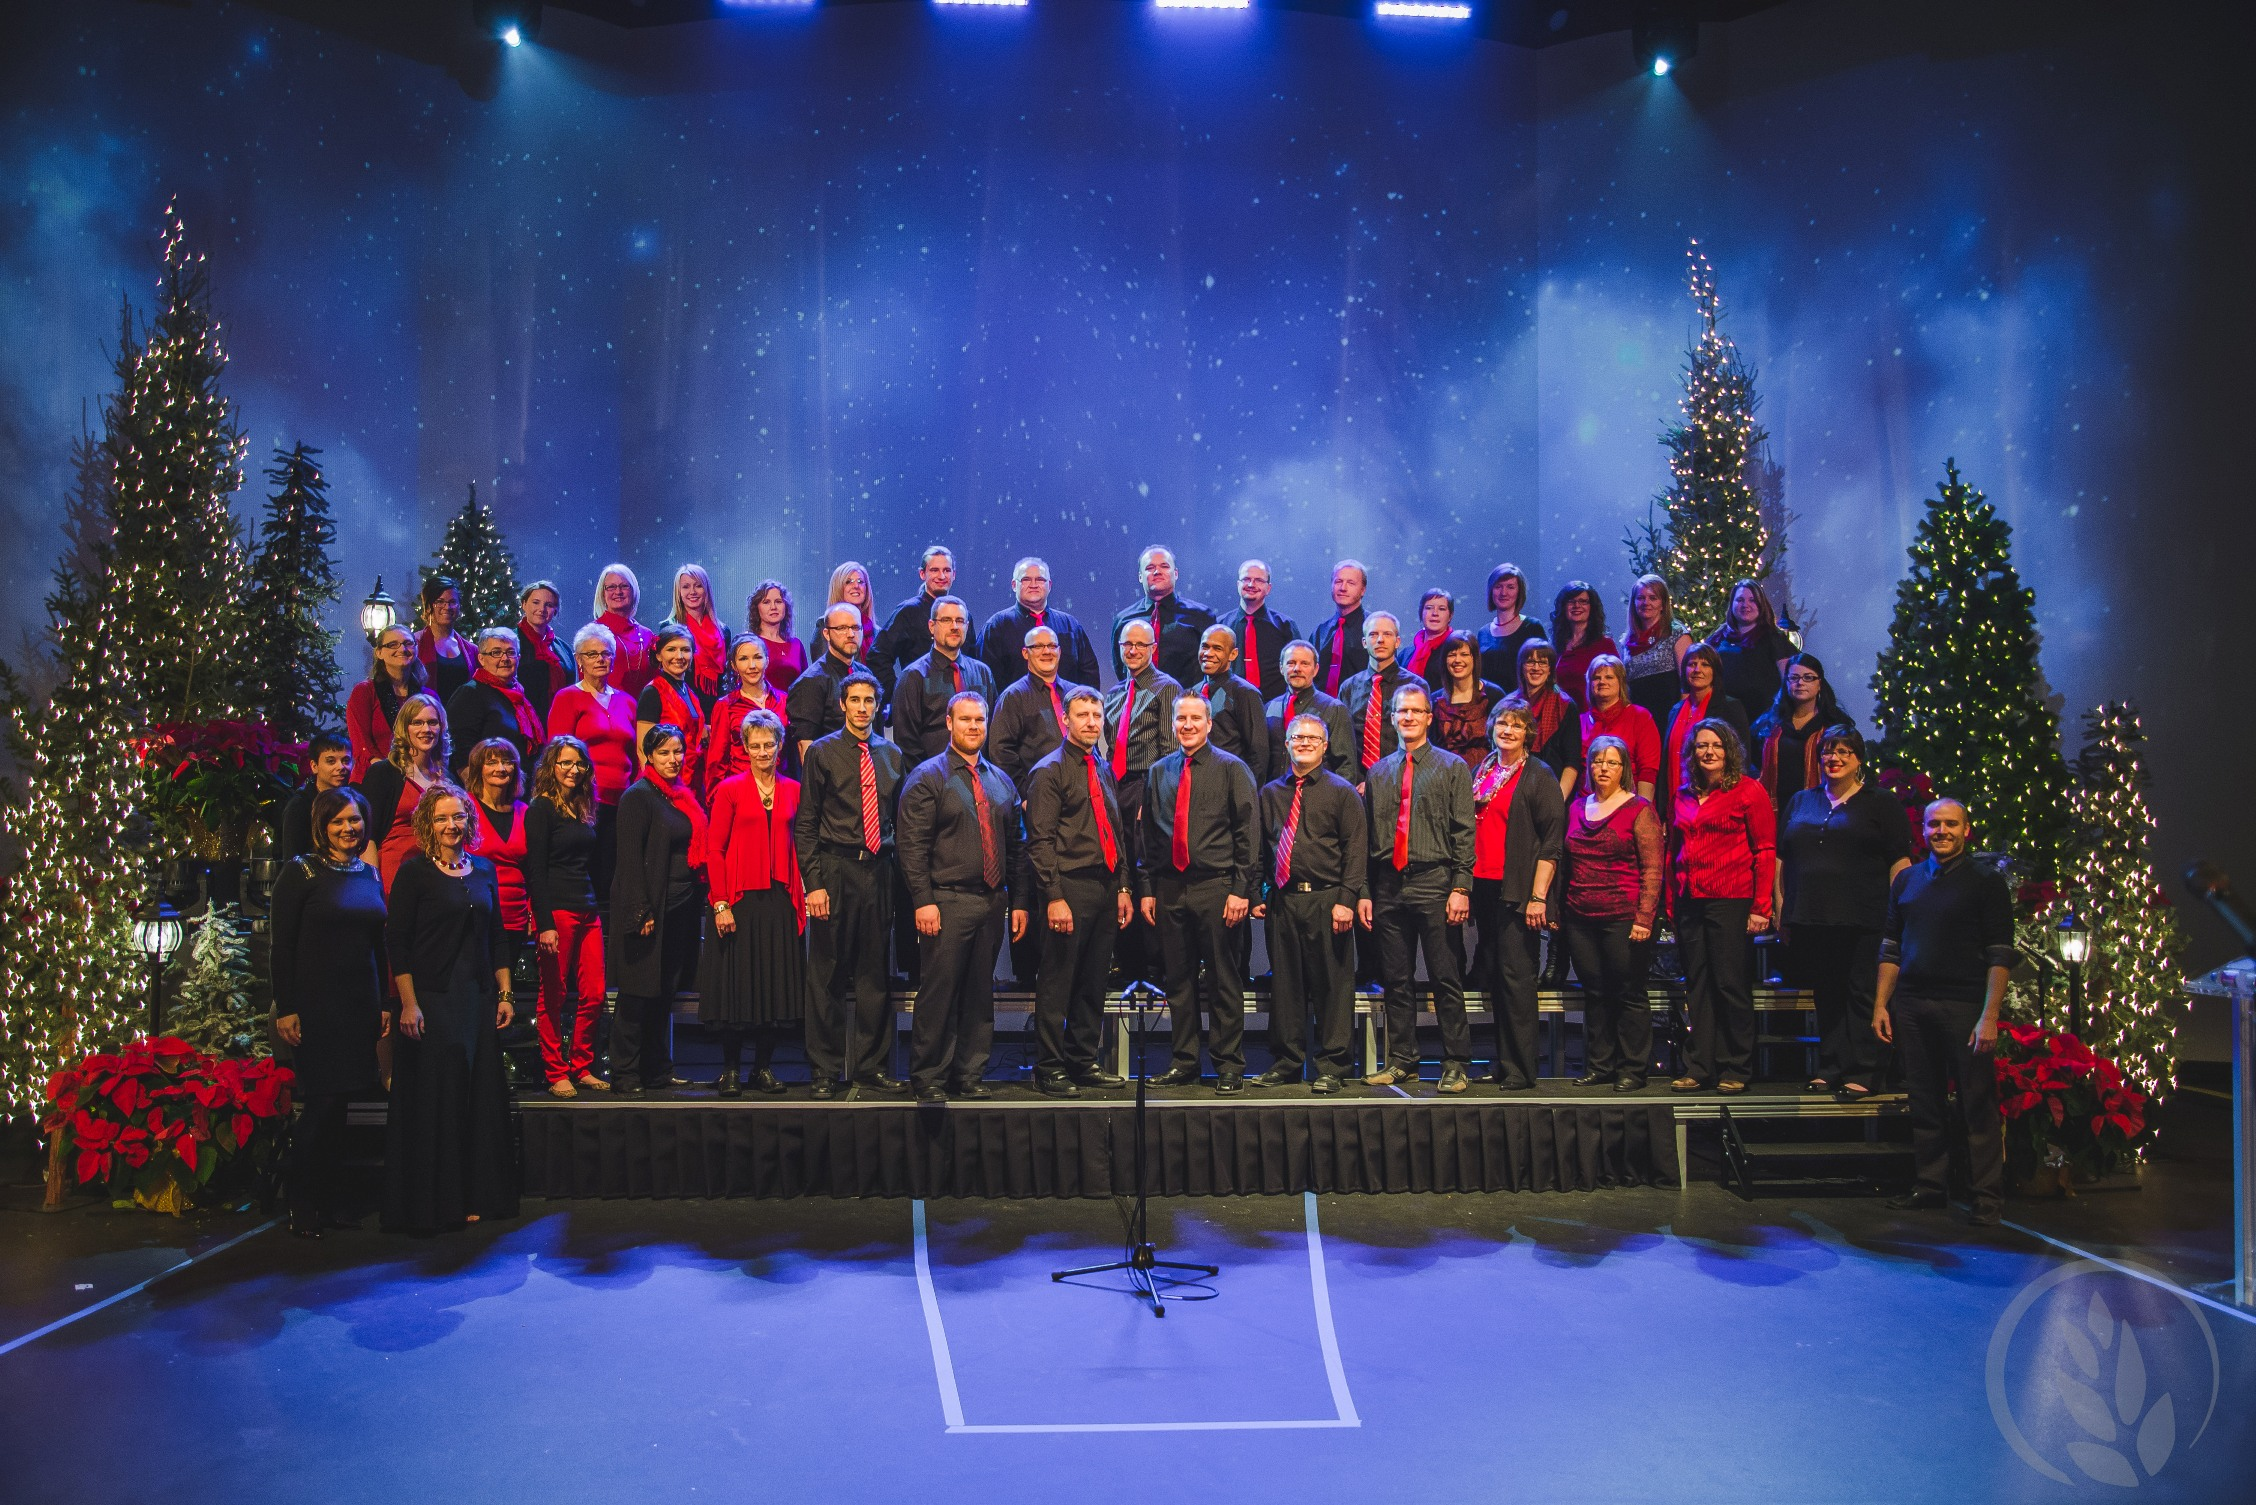 Christmas Concert on Stage